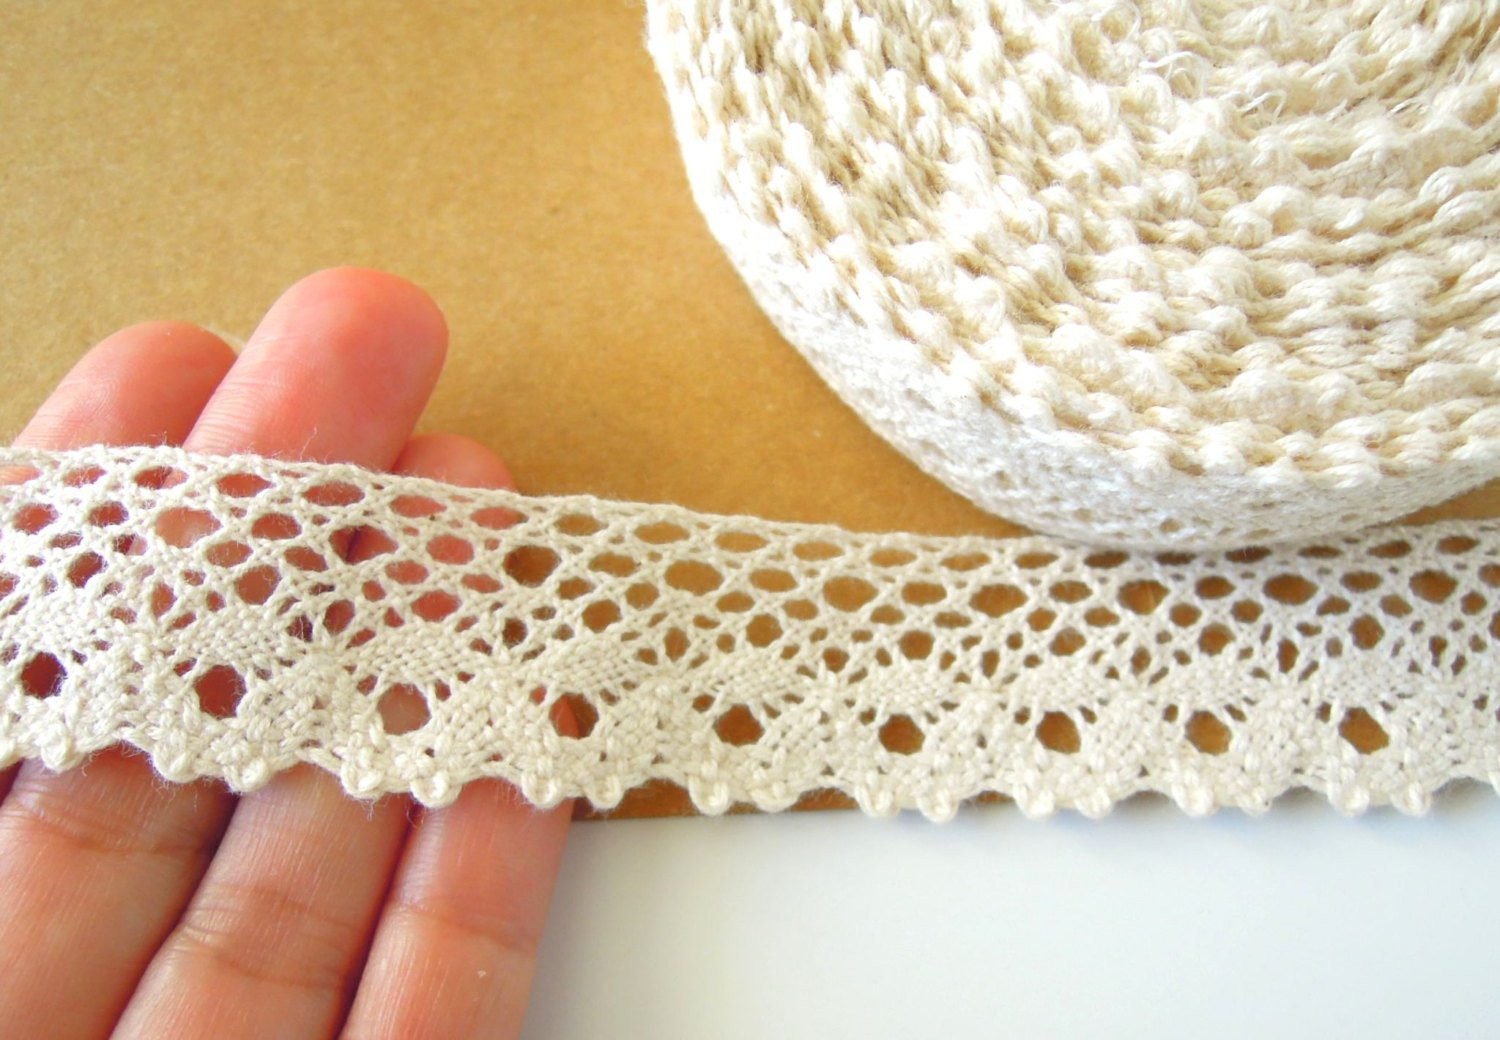 Crochet Lace Edging Inspirational Cream Crochet Lace Trim 25 Mm Cotton Lace Trim Cotton Lace Of Charming 48 Images Crochet Lace Edging